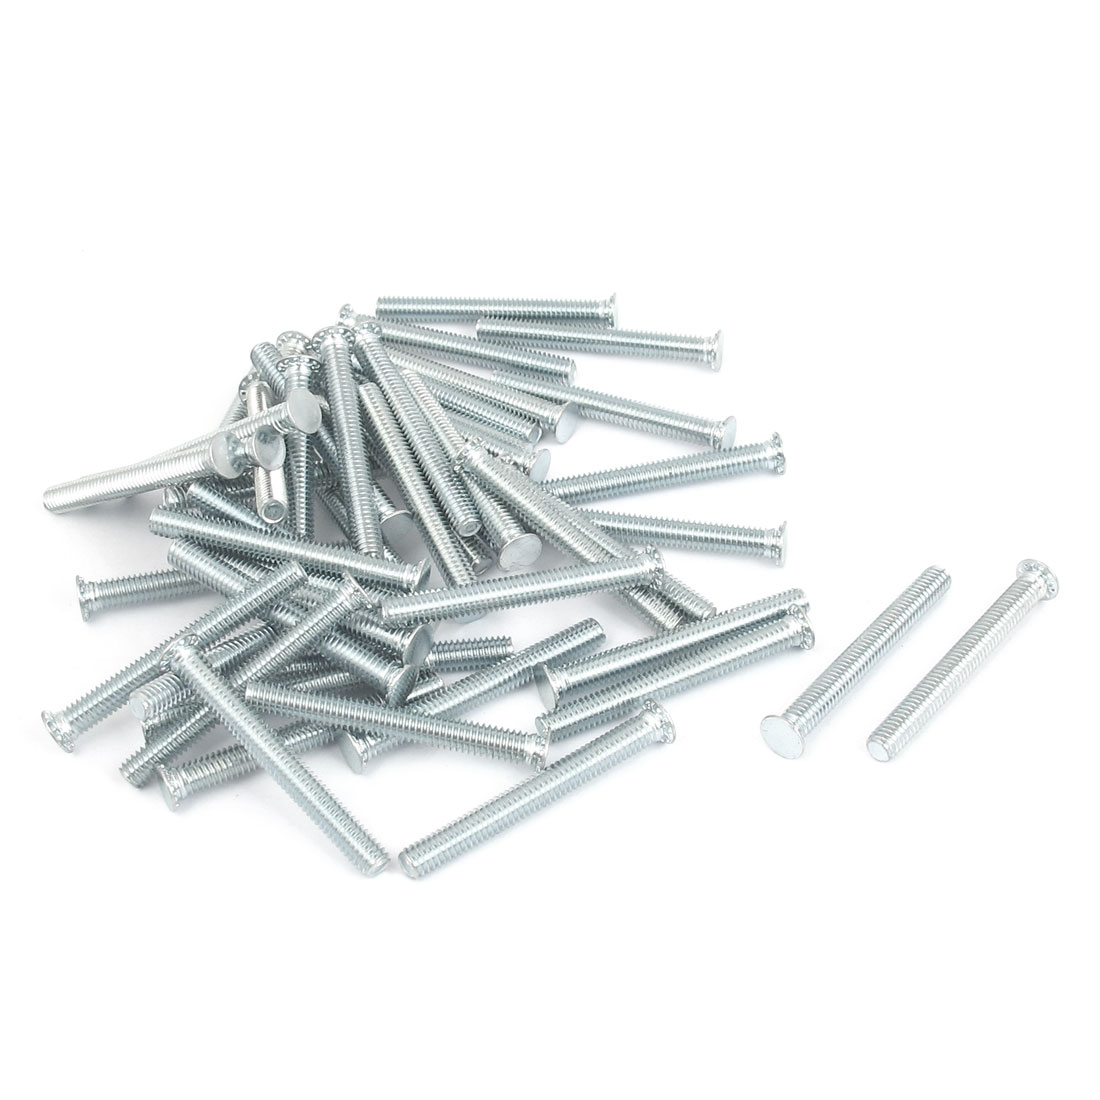 M4x35mm Zinc Plated Flush Head Self Clinching Threaded Studs Fastener 50pcs